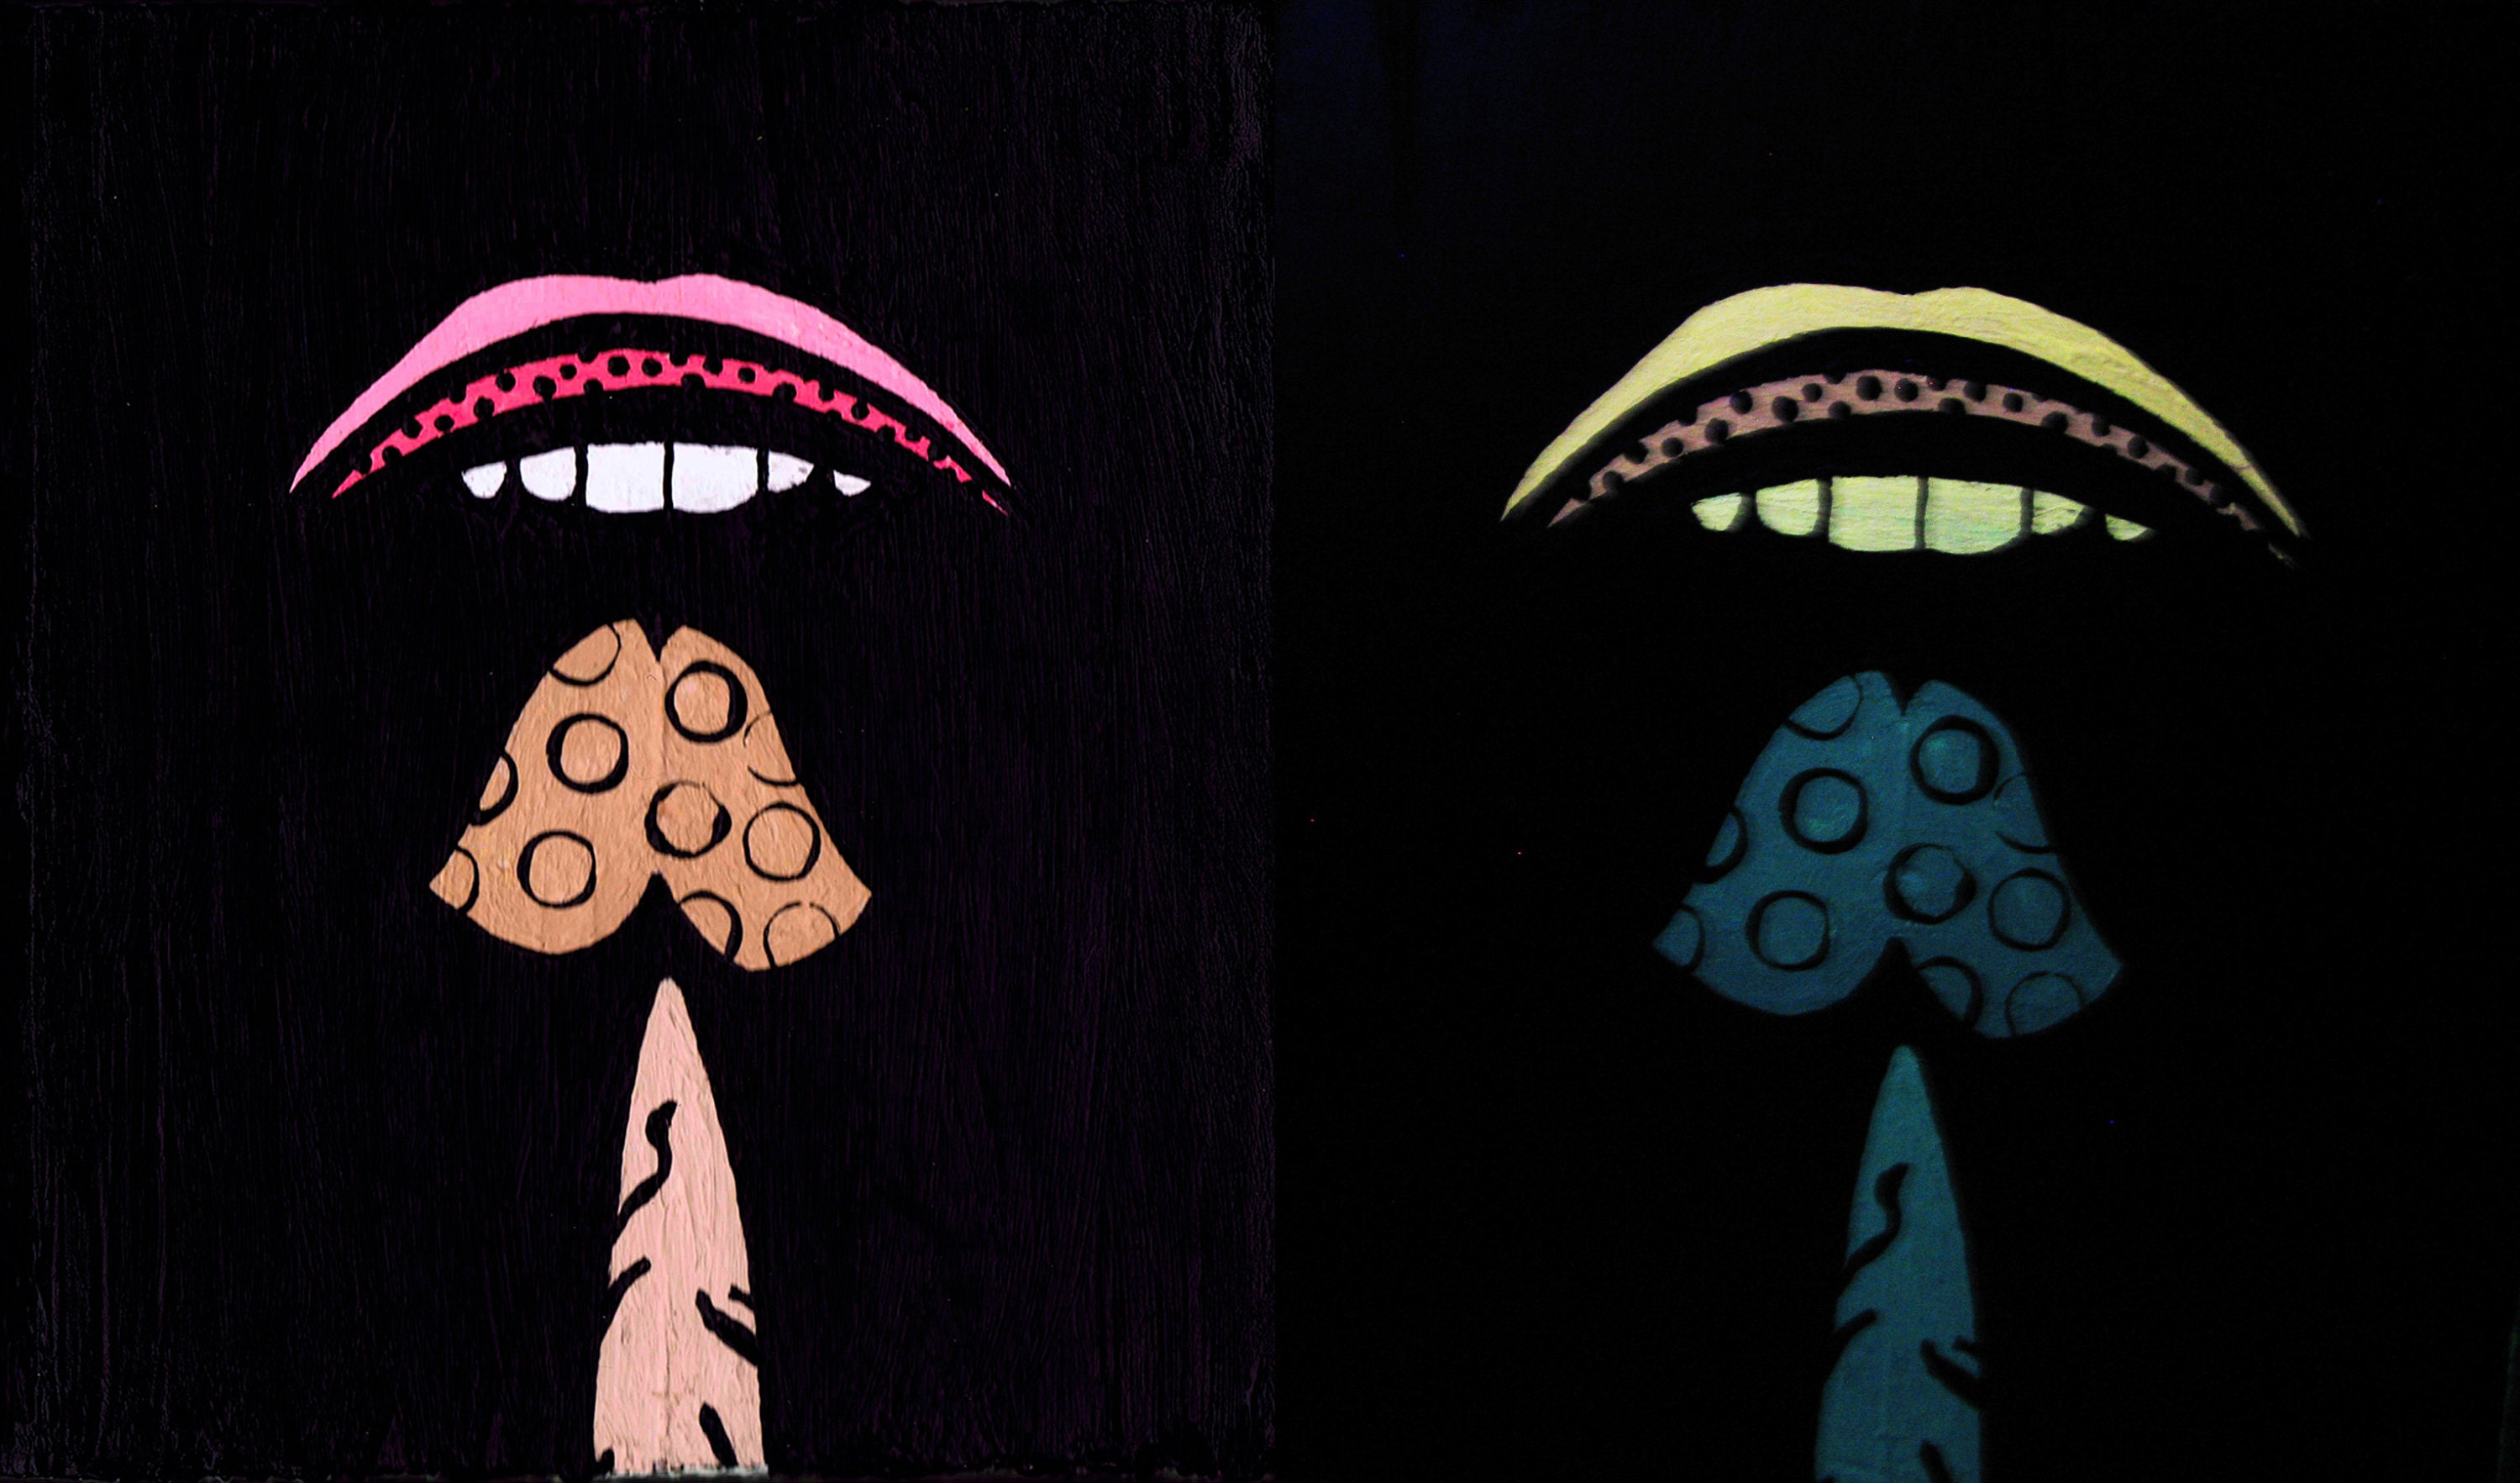 Tasting Mushrooms by CRD Larson under normal light (right) and black light (left)